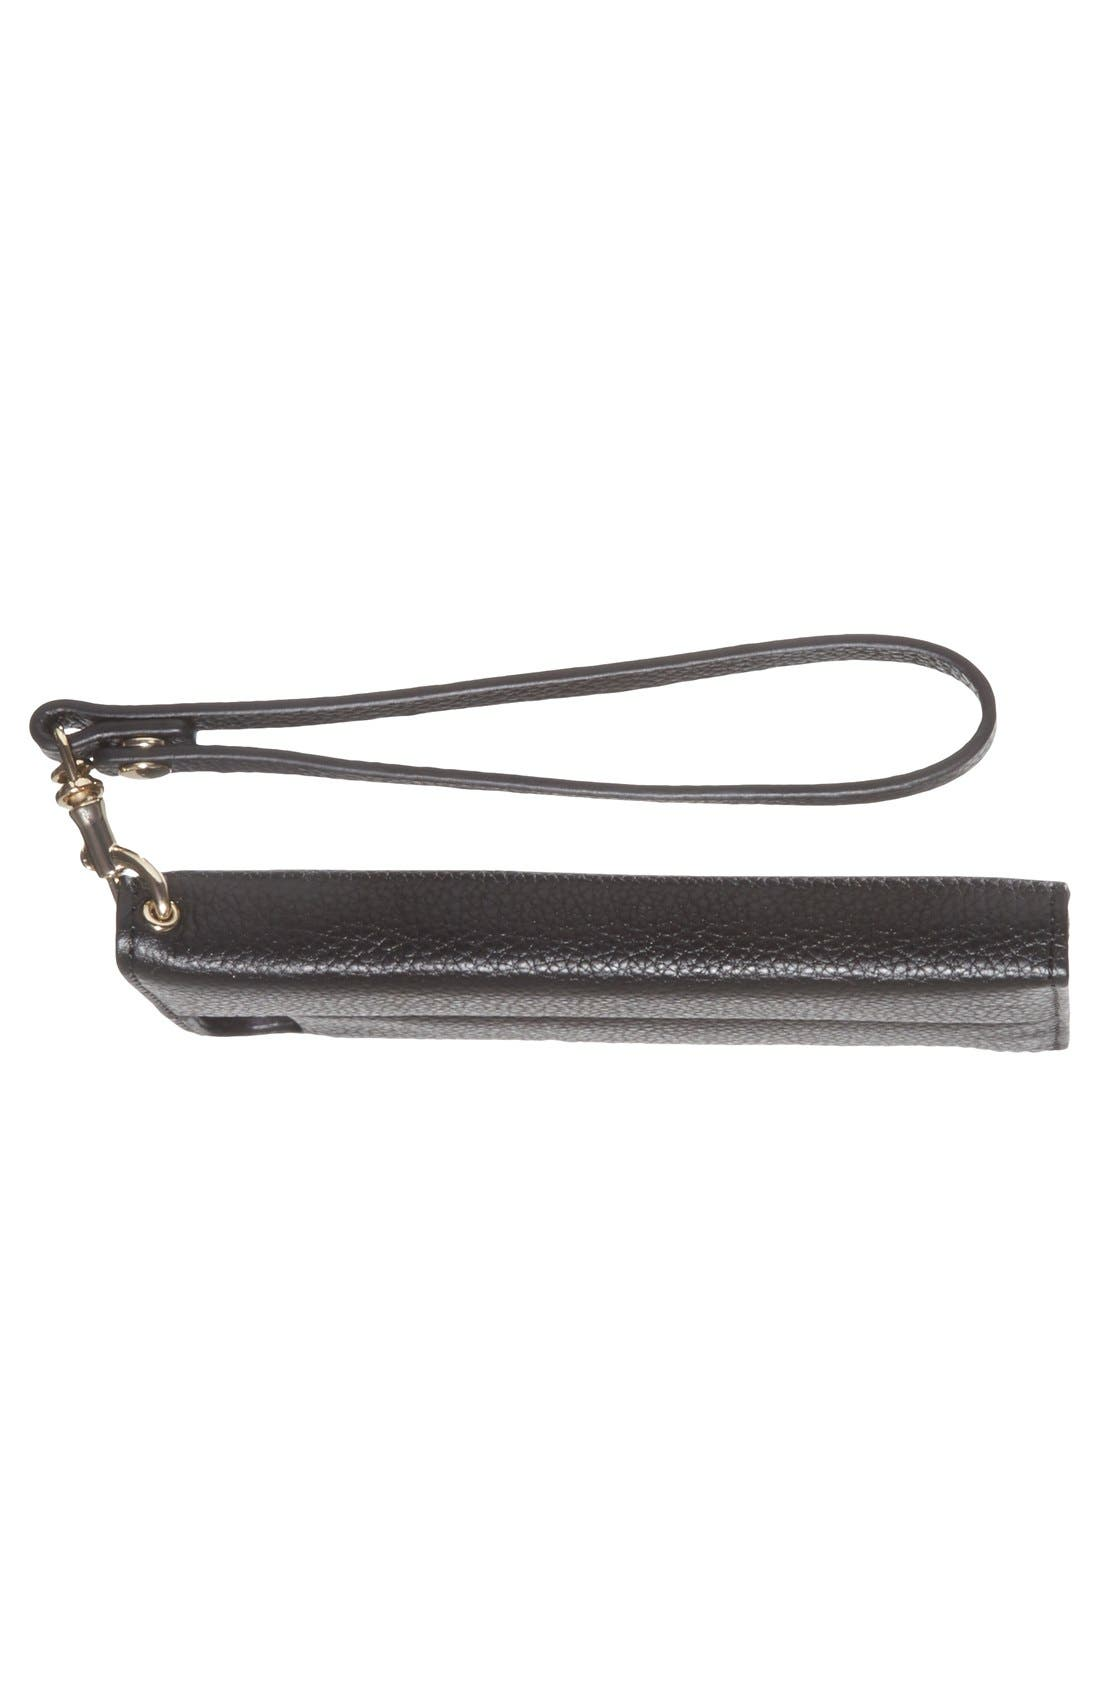 REBECCA MINKOFF,                             iPhone 6 & 6s Folio Wristlet,                             Alternate thumbnail 3, color,                             001